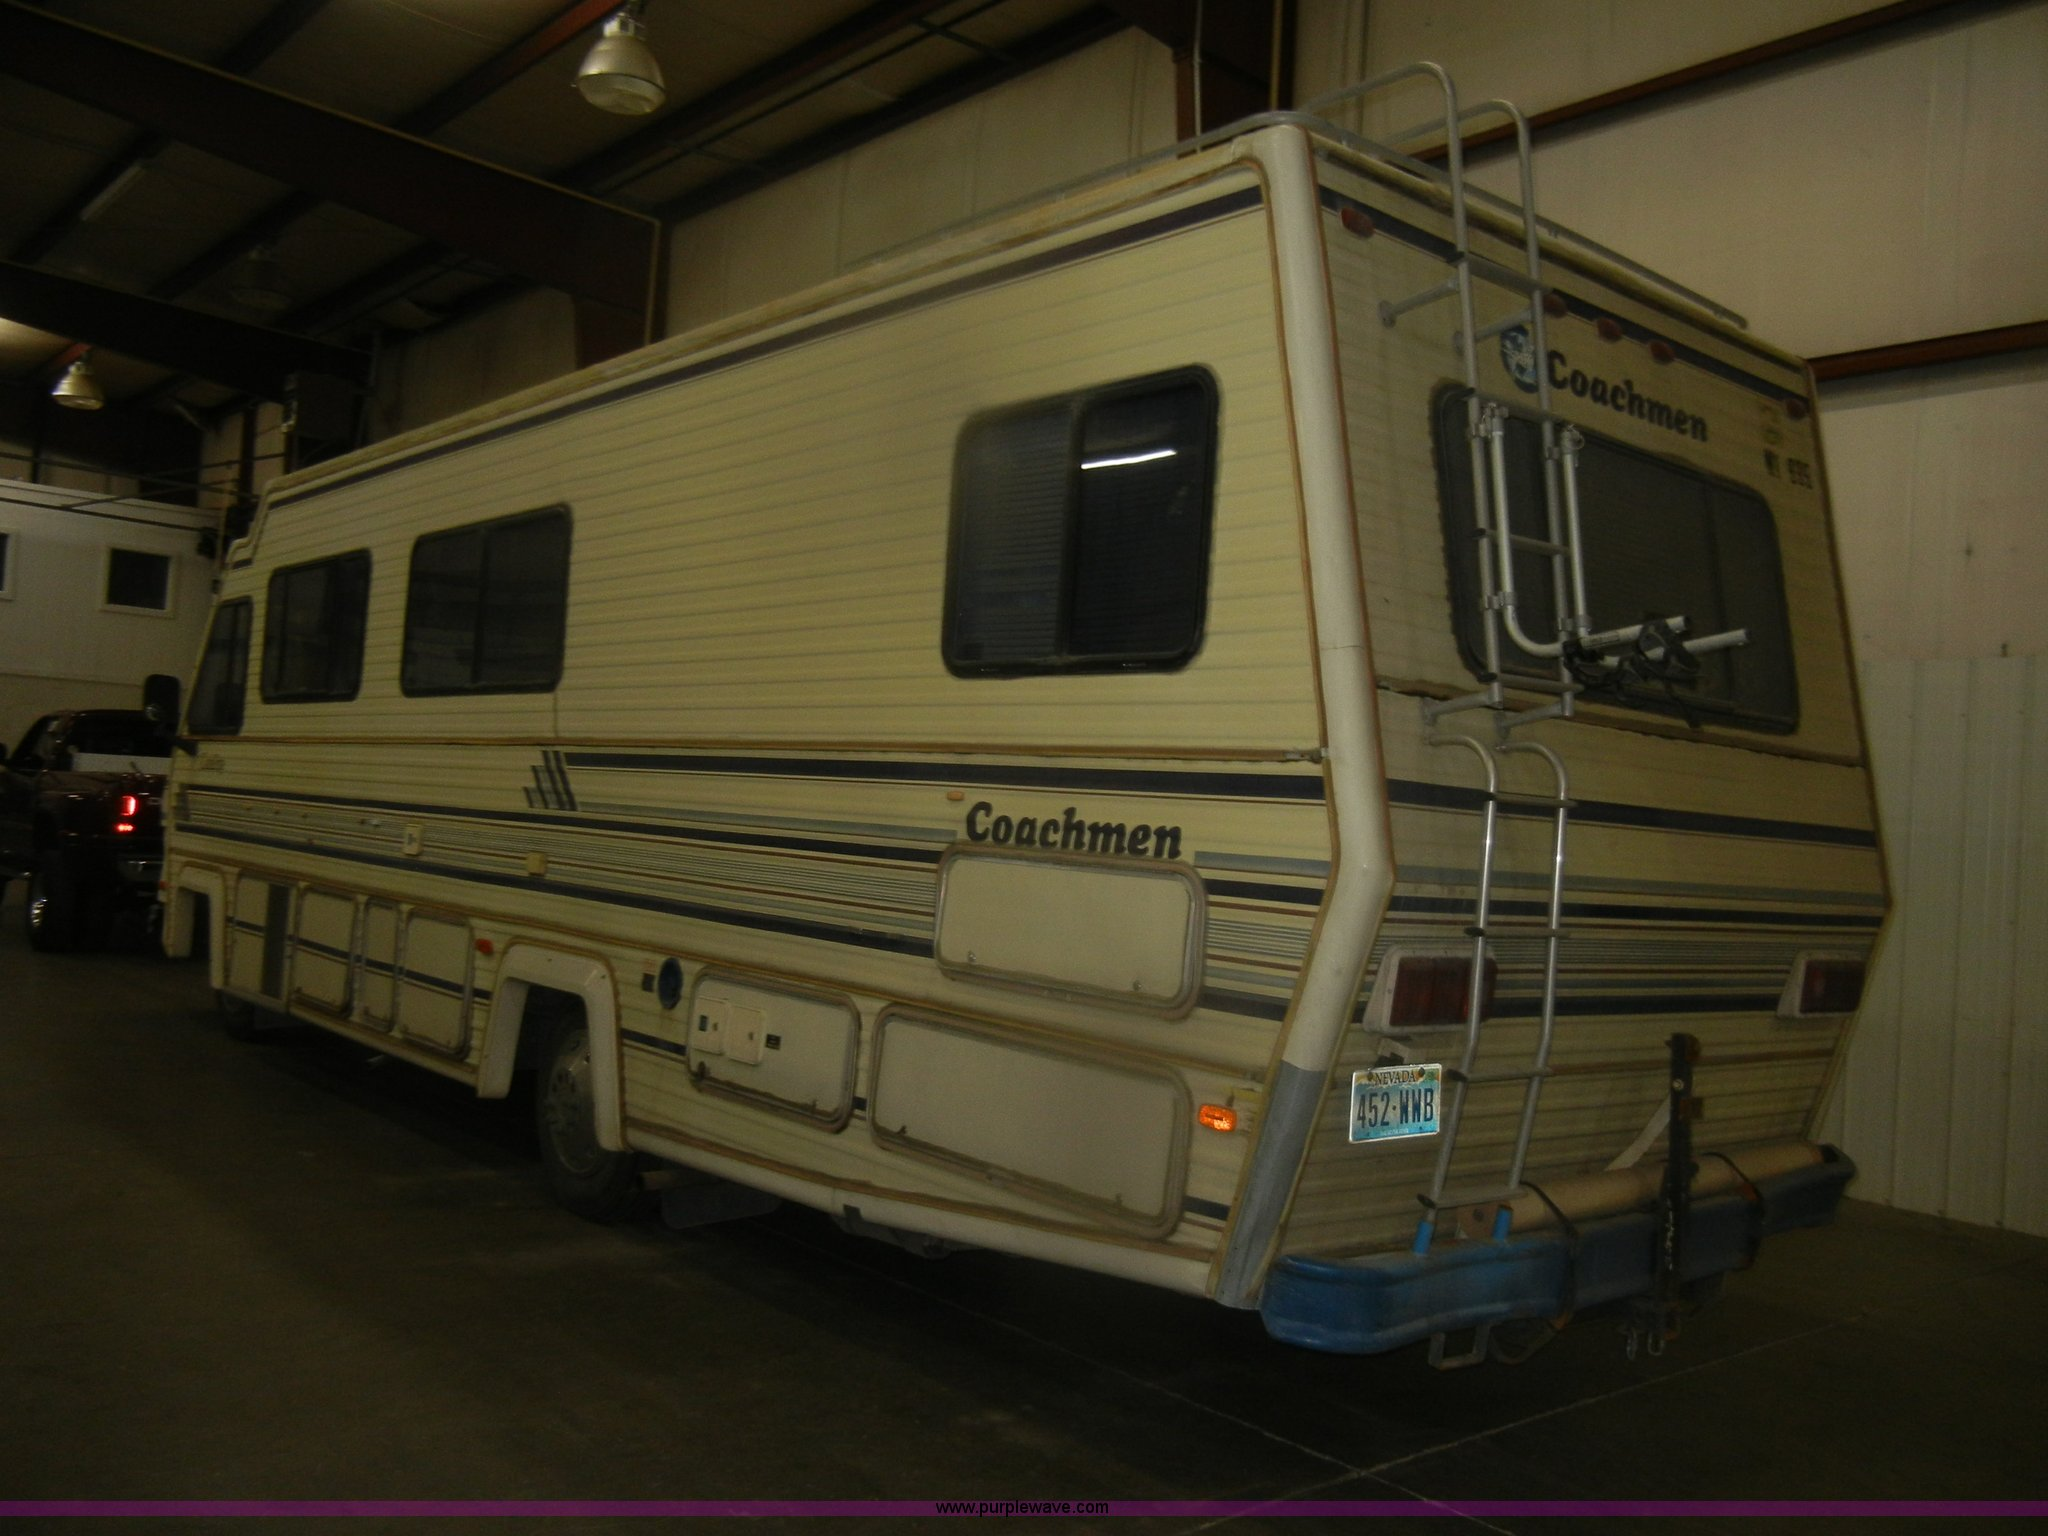 1988 Coachmen Catalina Manual Owner S Rv Mirada Wiring Diagram Santara Documents Re Electrical Jim Murphy 8 77 65 Left Side Trailer